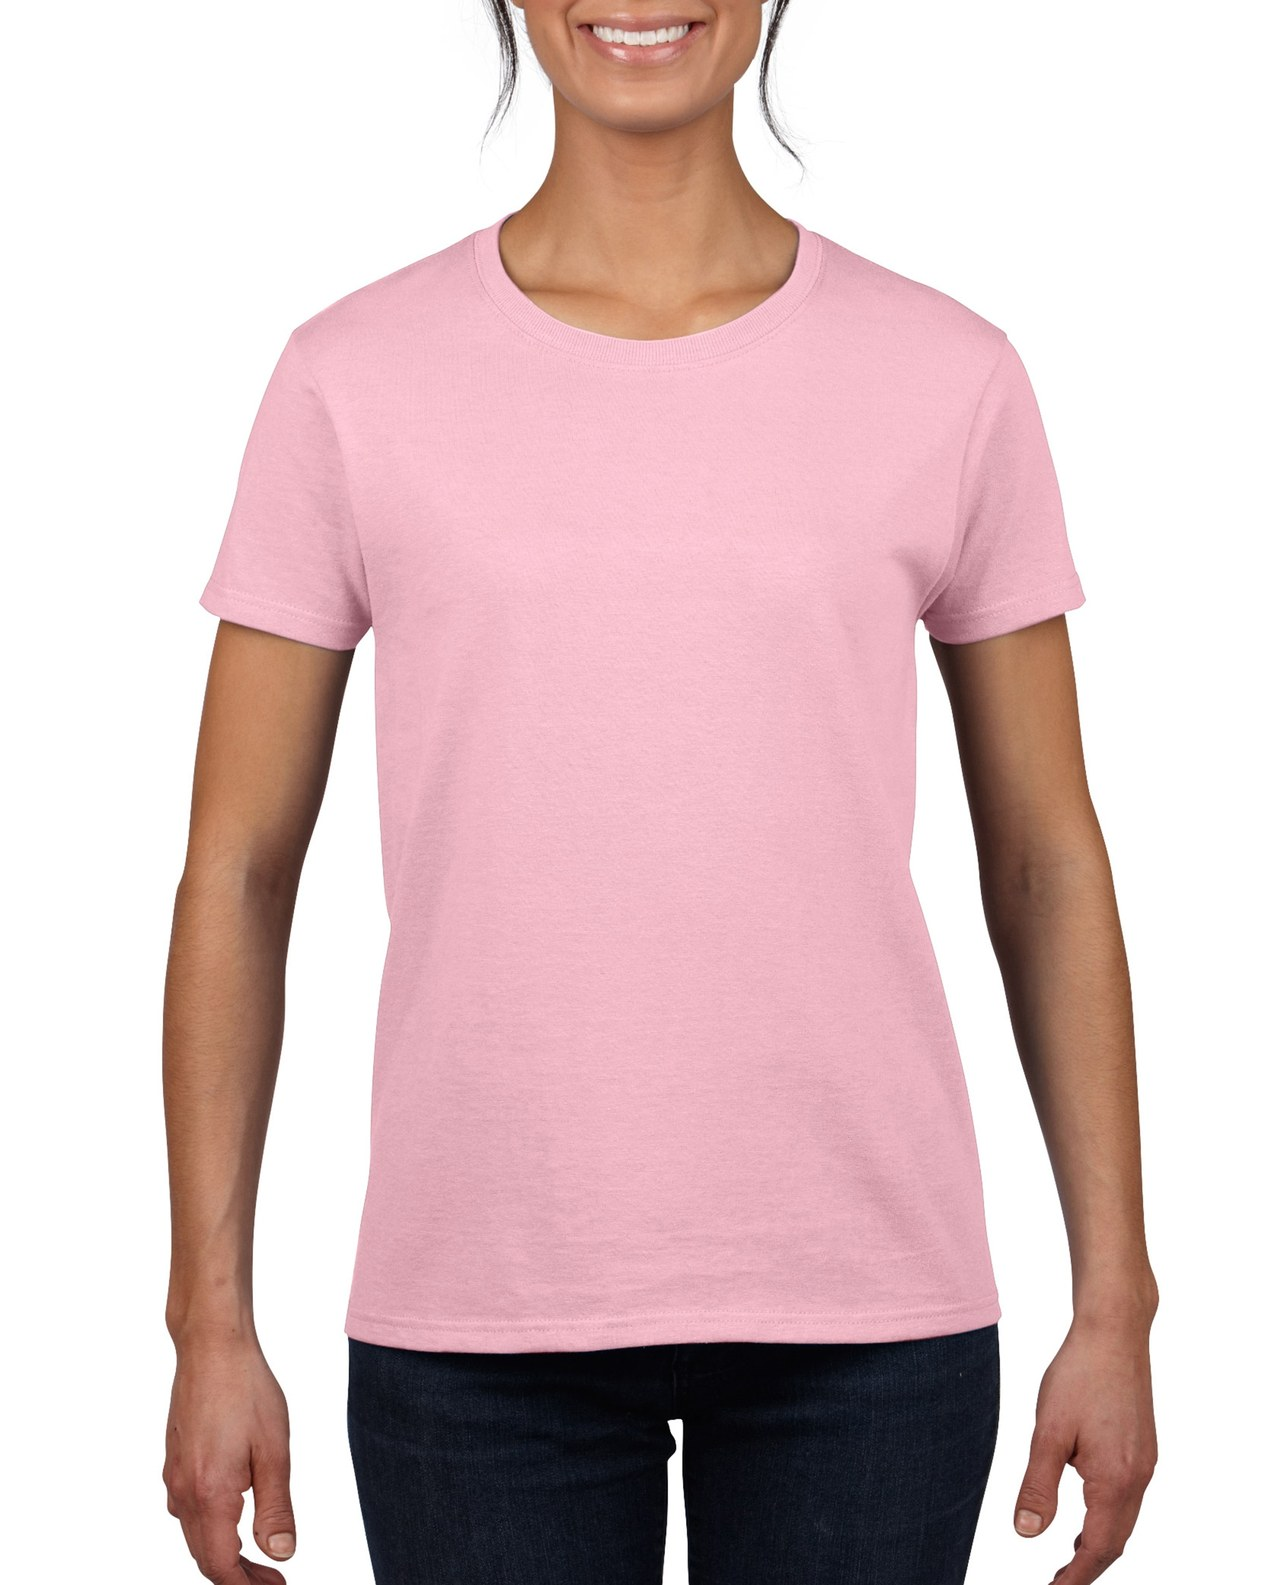 917ad0fbb9dded 2000L | Gildan® Ultra Cotton® | 6.0 oz/yd² | Ladies' T-Shirt | Gildan